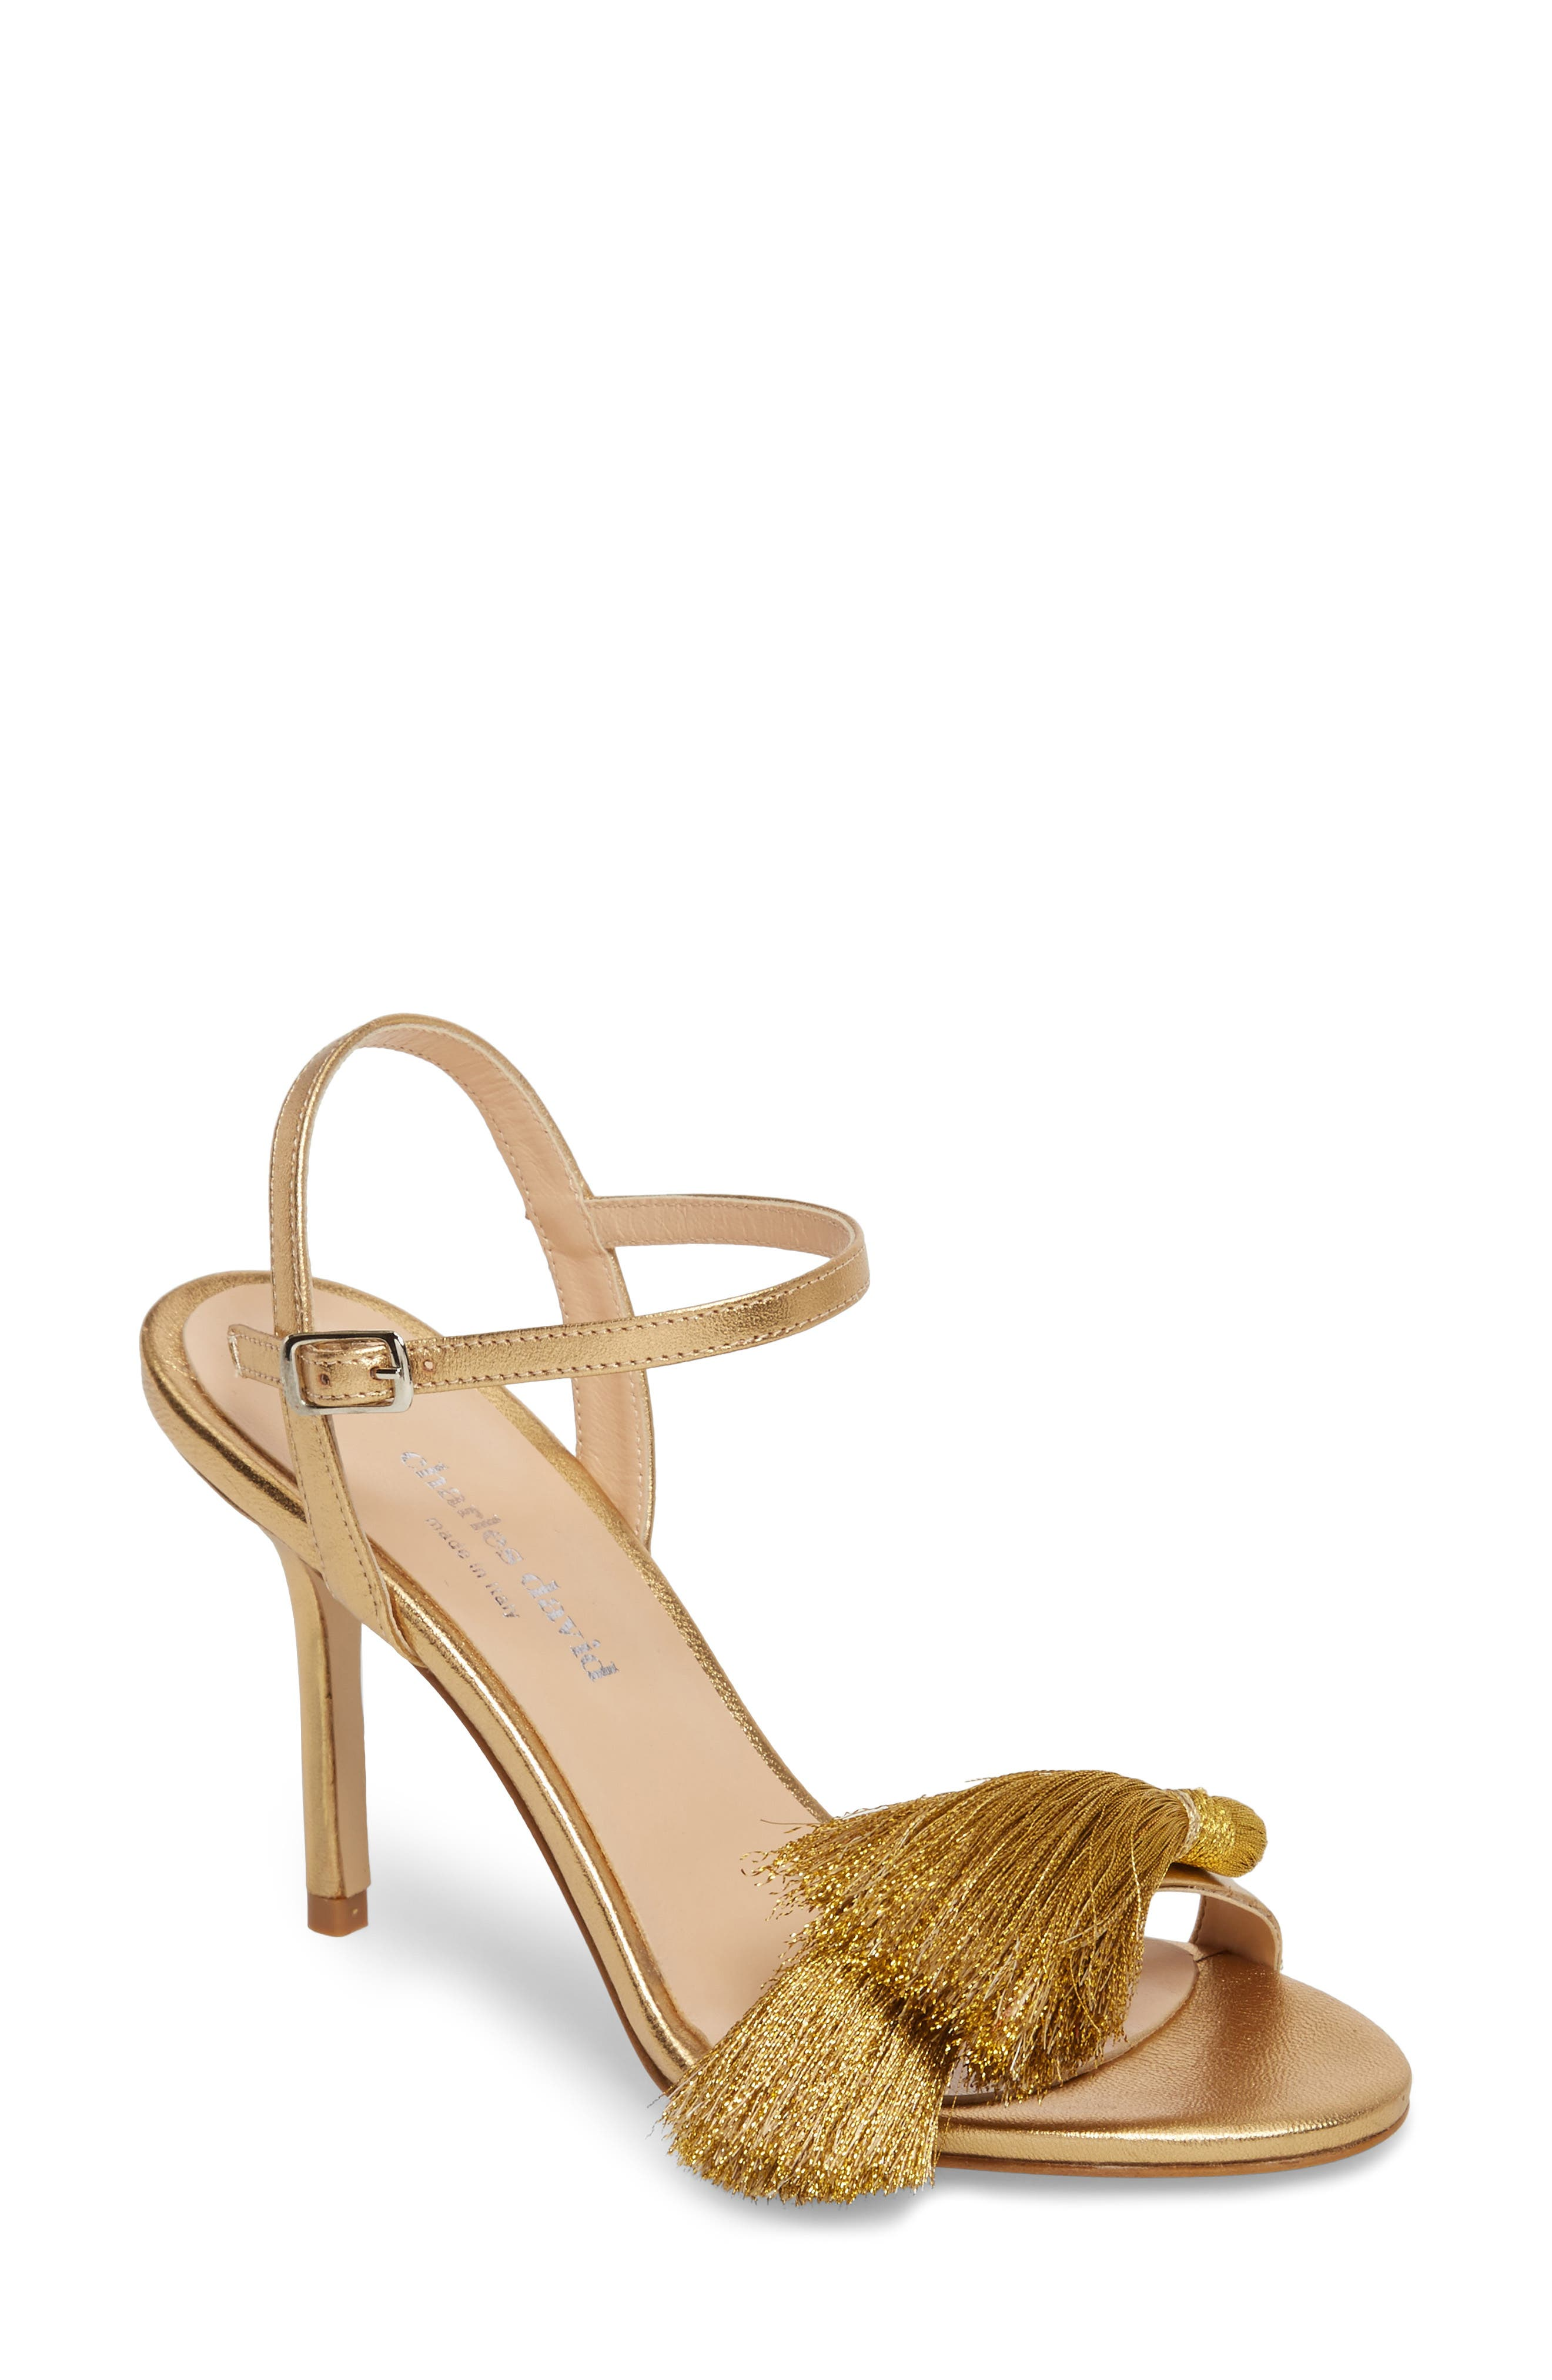 Sassy Tassel Sandal,                         Main,                         color, GOLD LEATHER